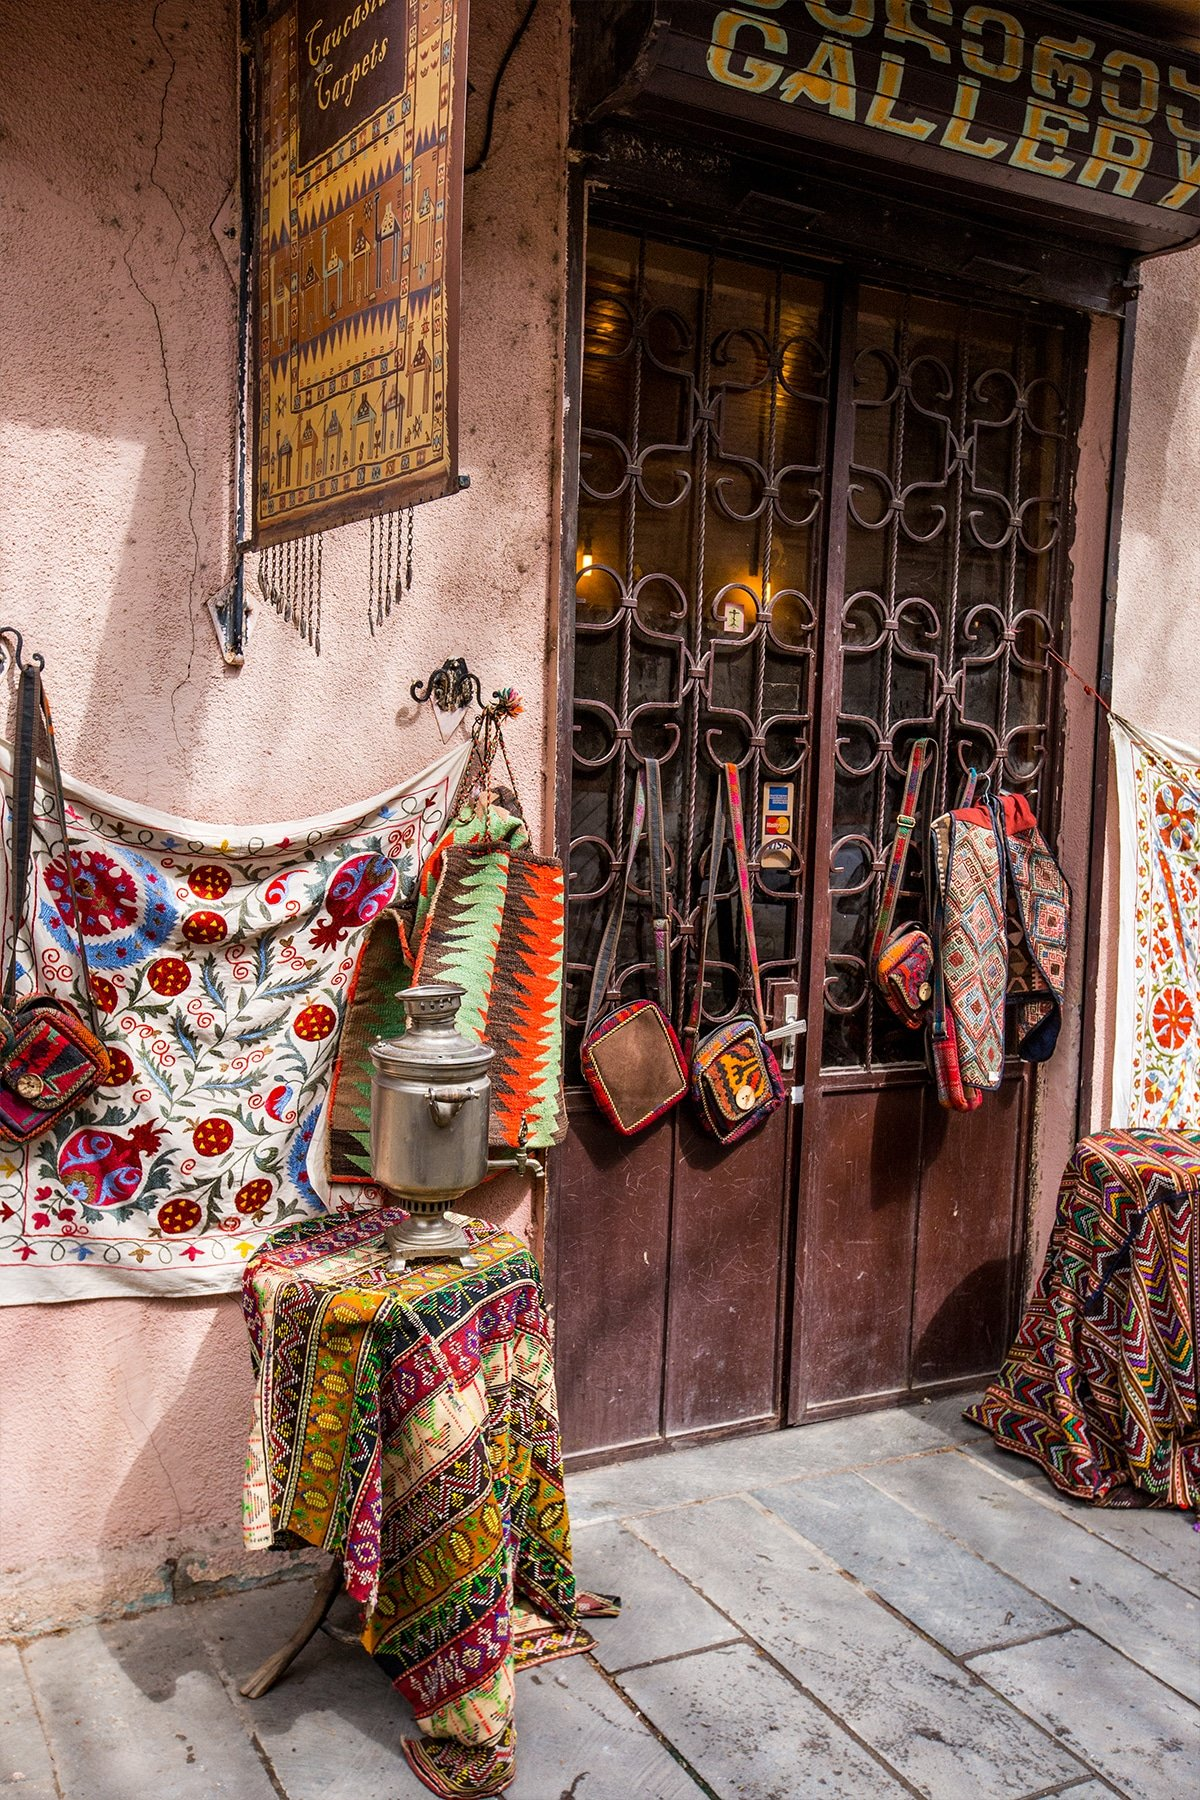 Shop in old town Tbilisi